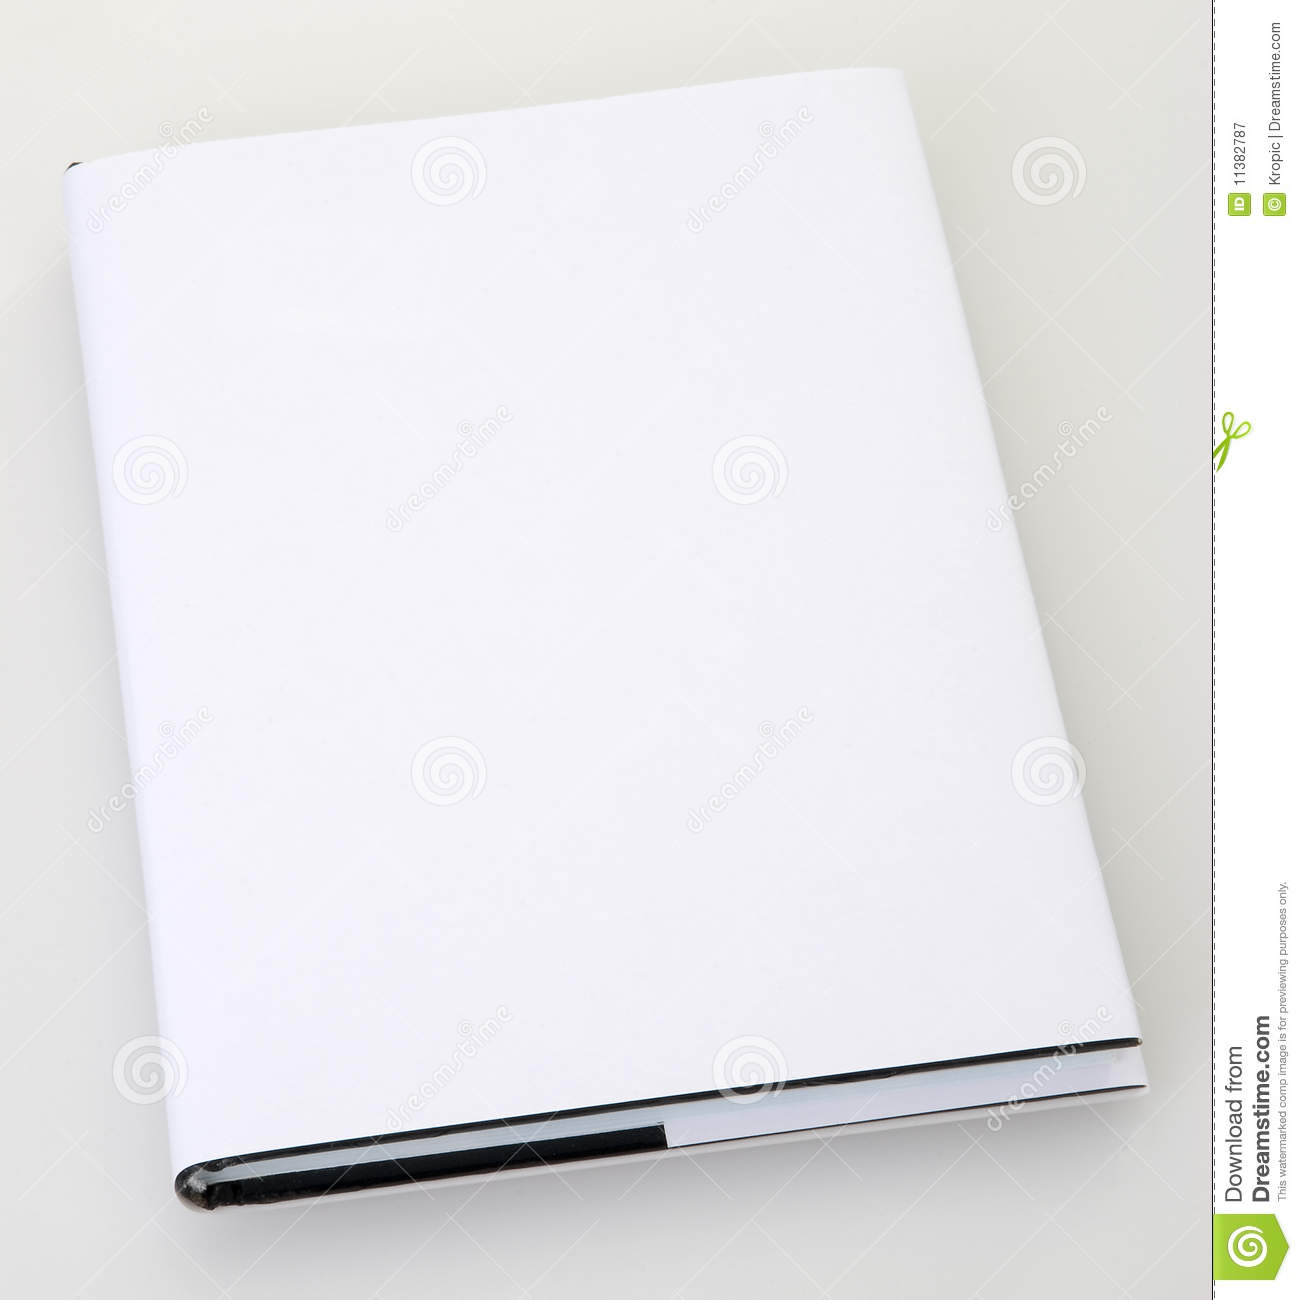 Book Cover Stock Photography ~ Blank book cover royalty free stock photography image